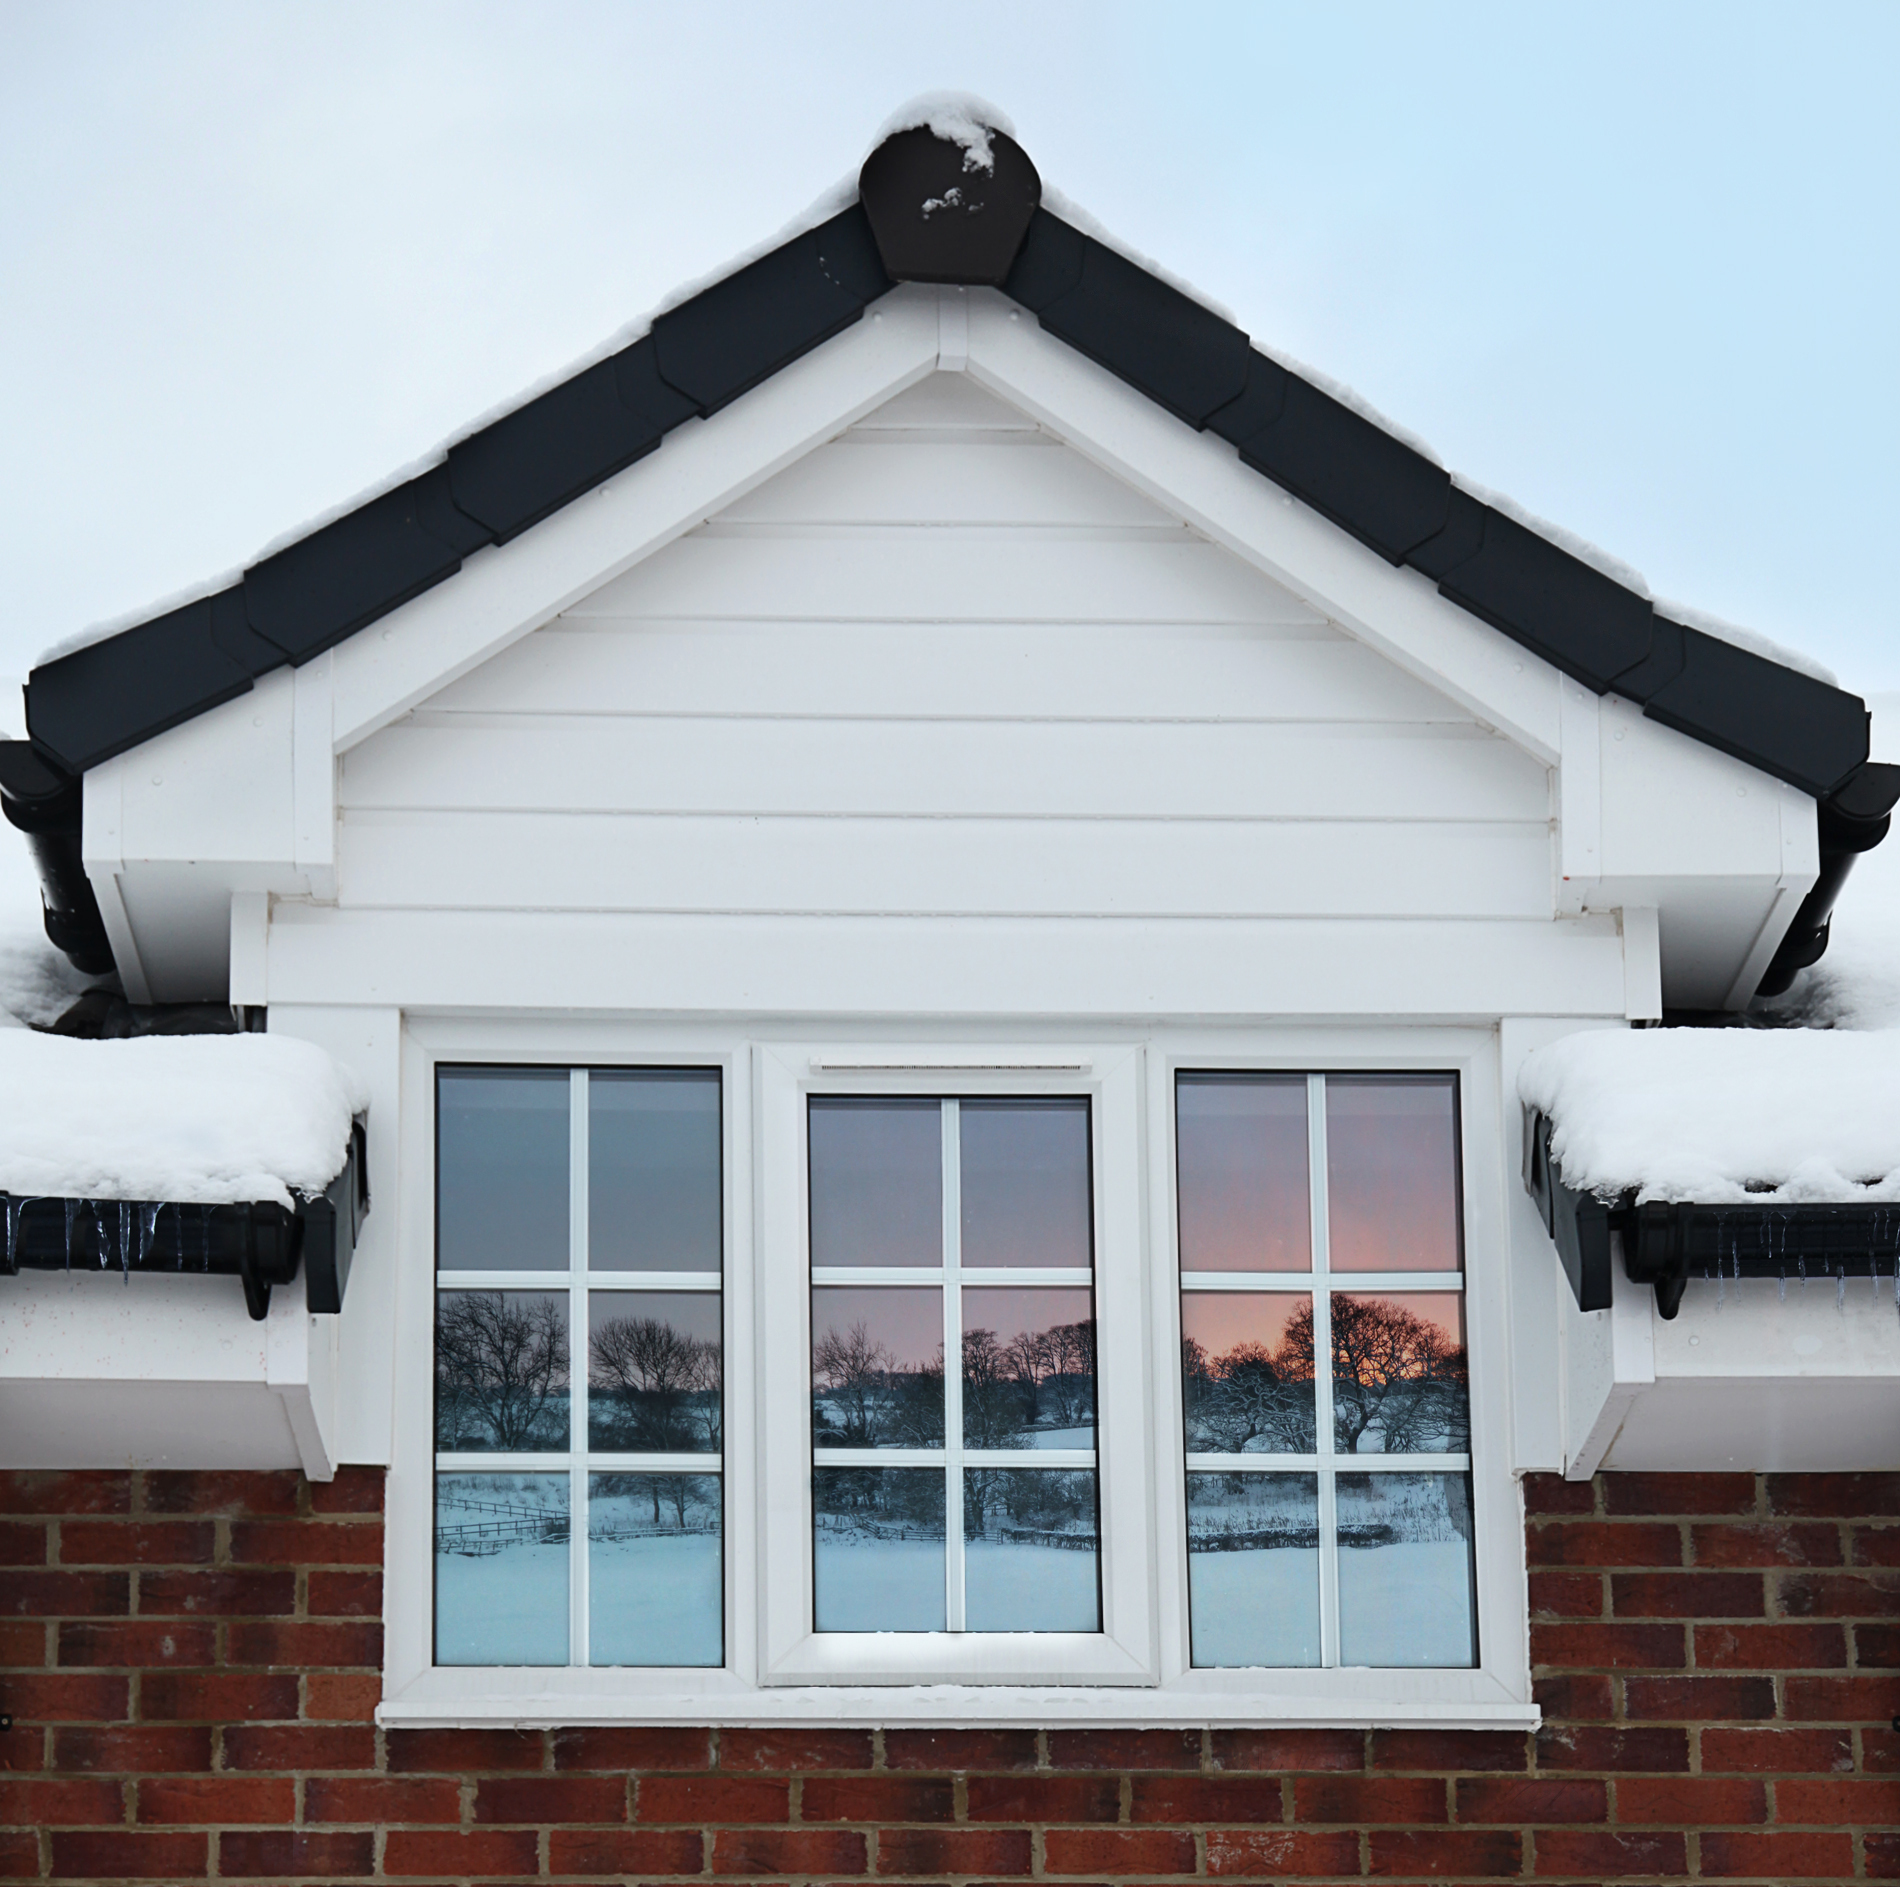 Double Glazing during Winter with Snow and icicles